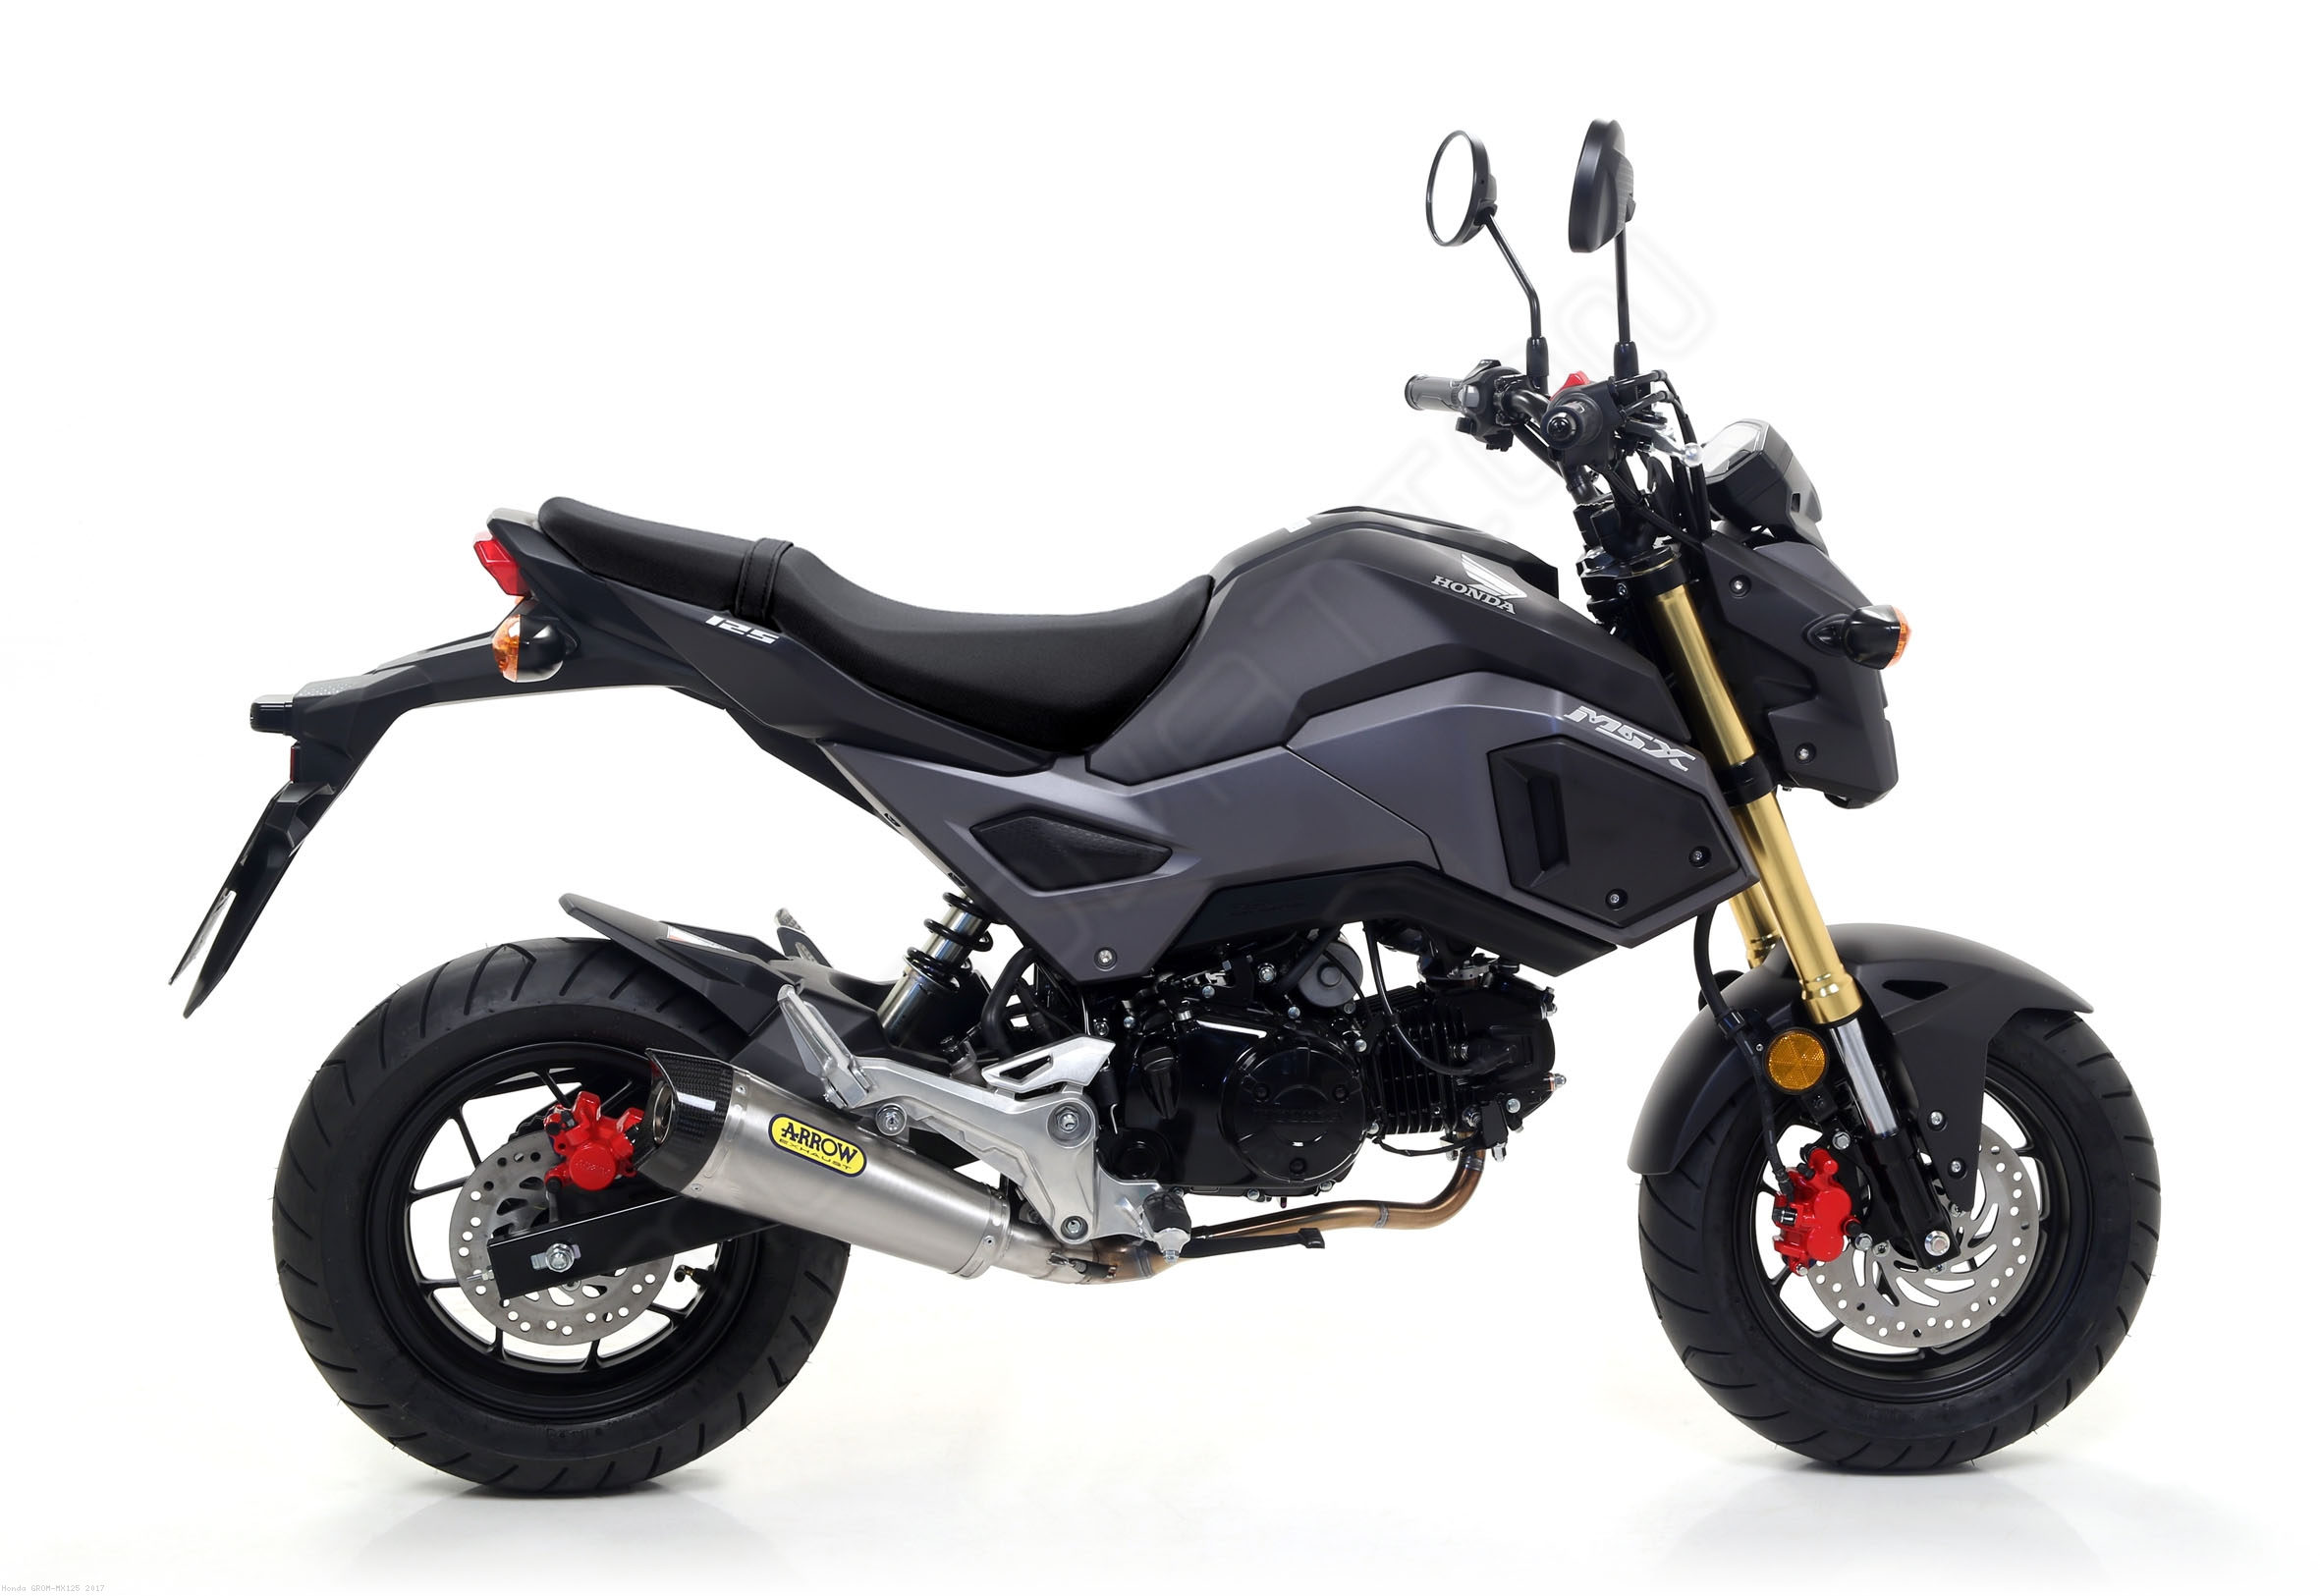 x kone exhaust by arrow honda grom mx125 2017 52507. Black Bedroom Furniture Sets. Home Design Ideas